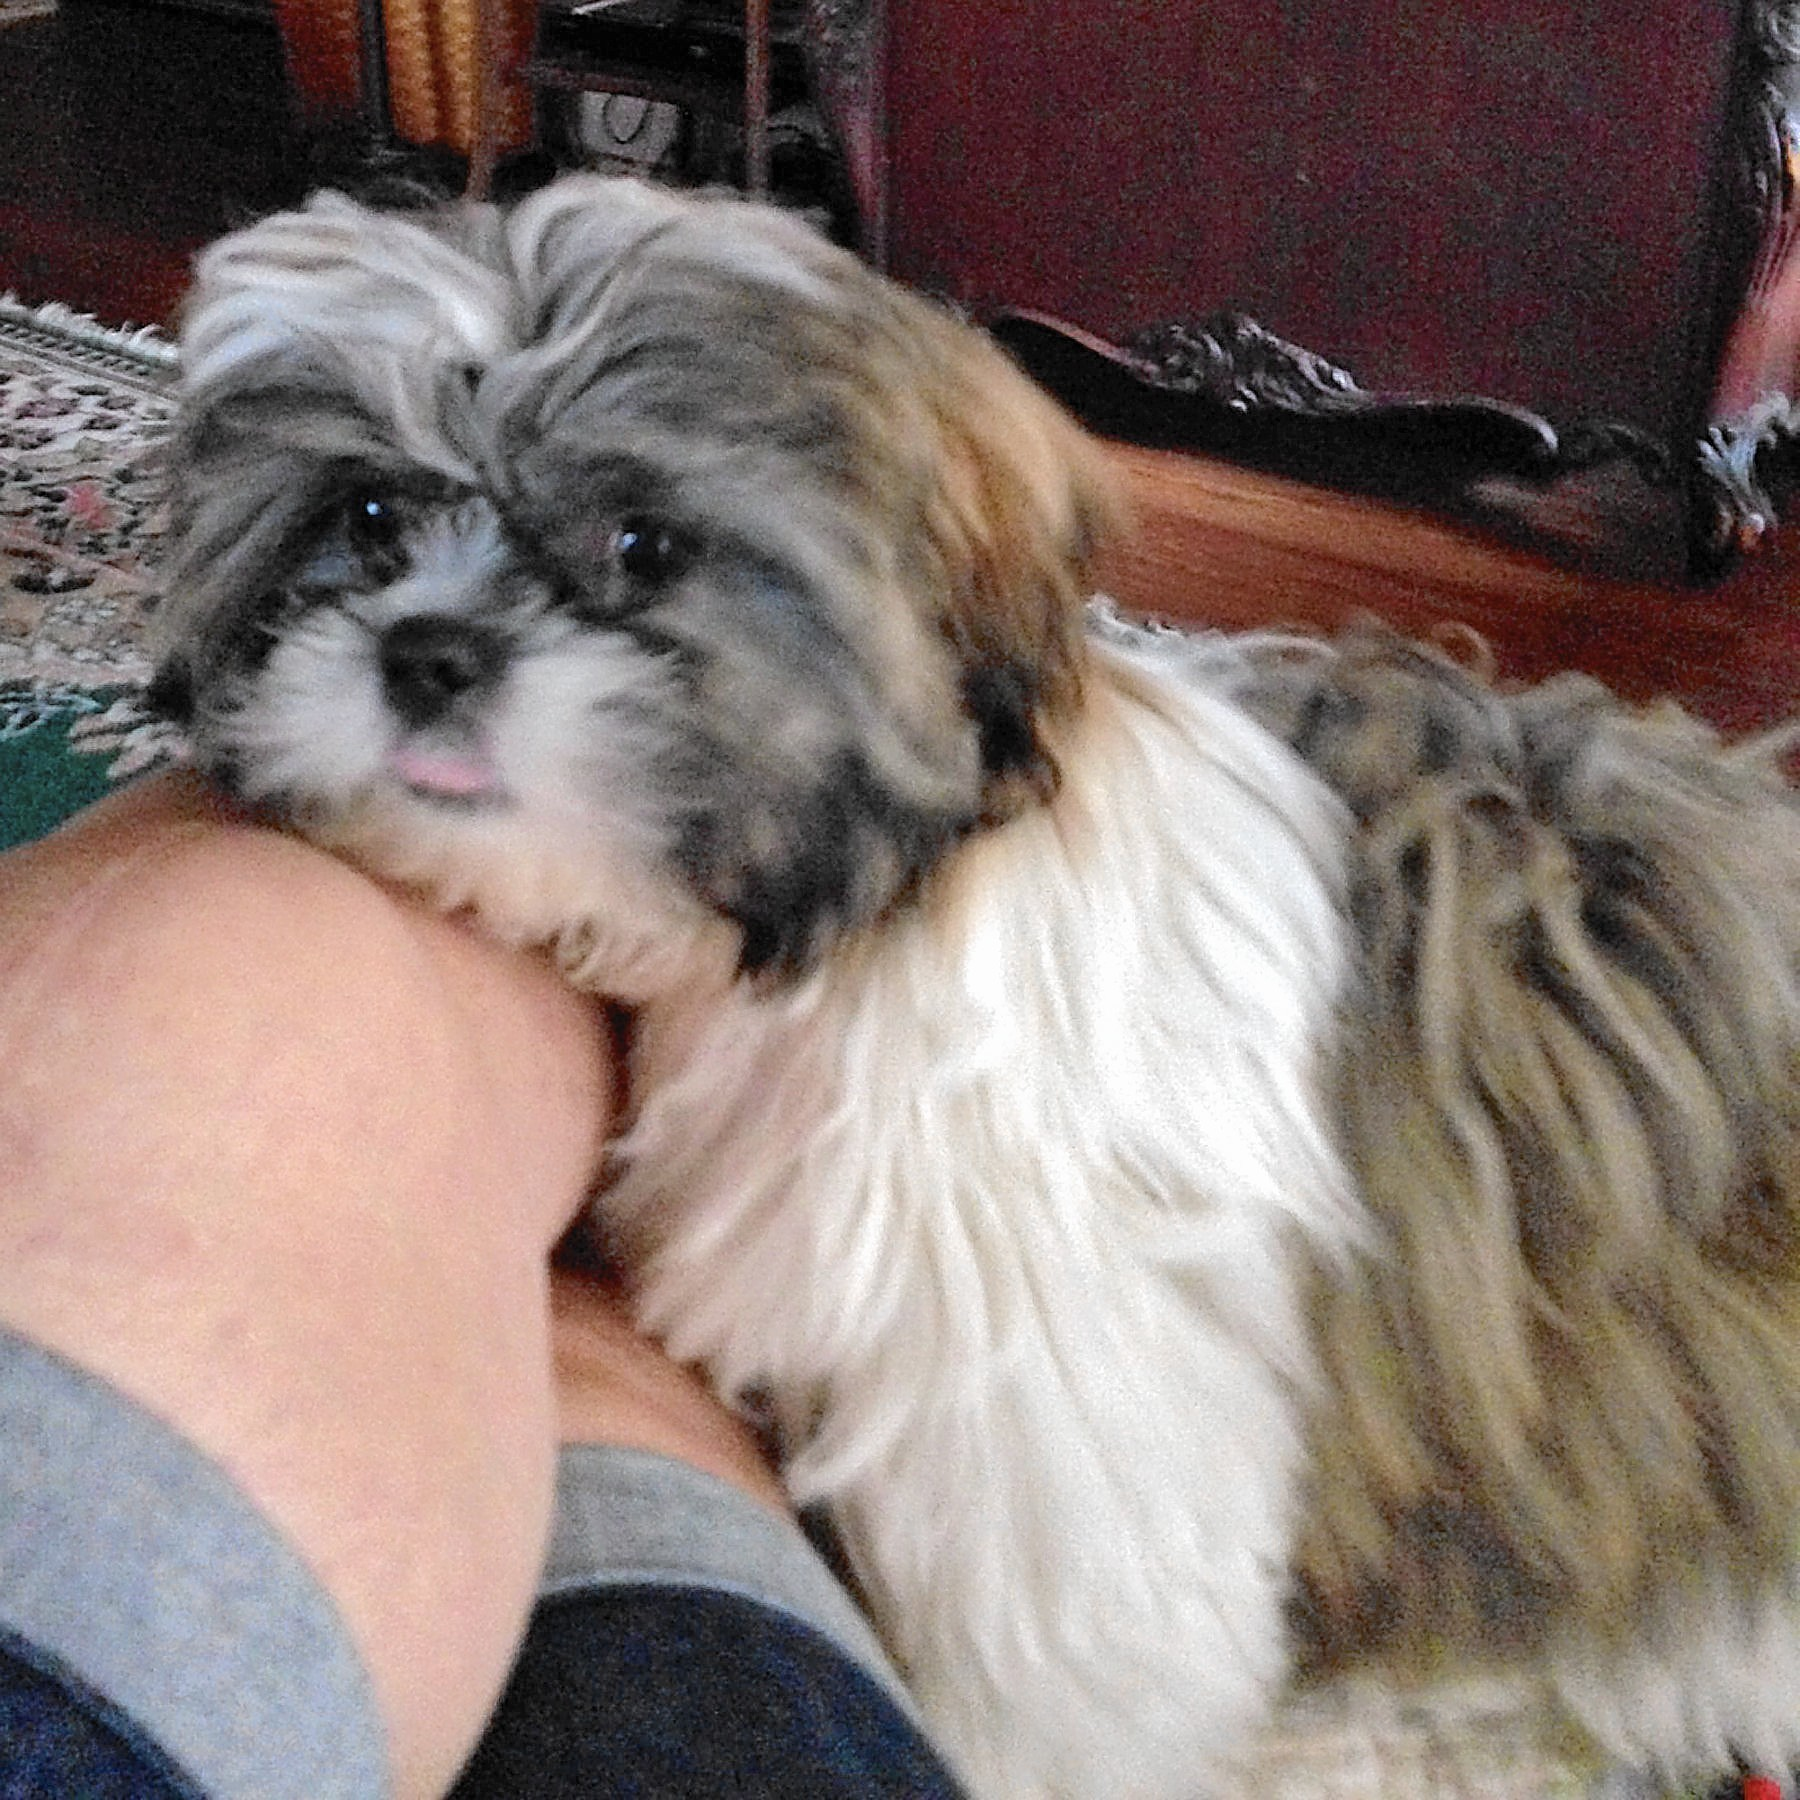 Bentley A 5 Month Old Shih Tzu Owned By Donna Kollar Of Allentown